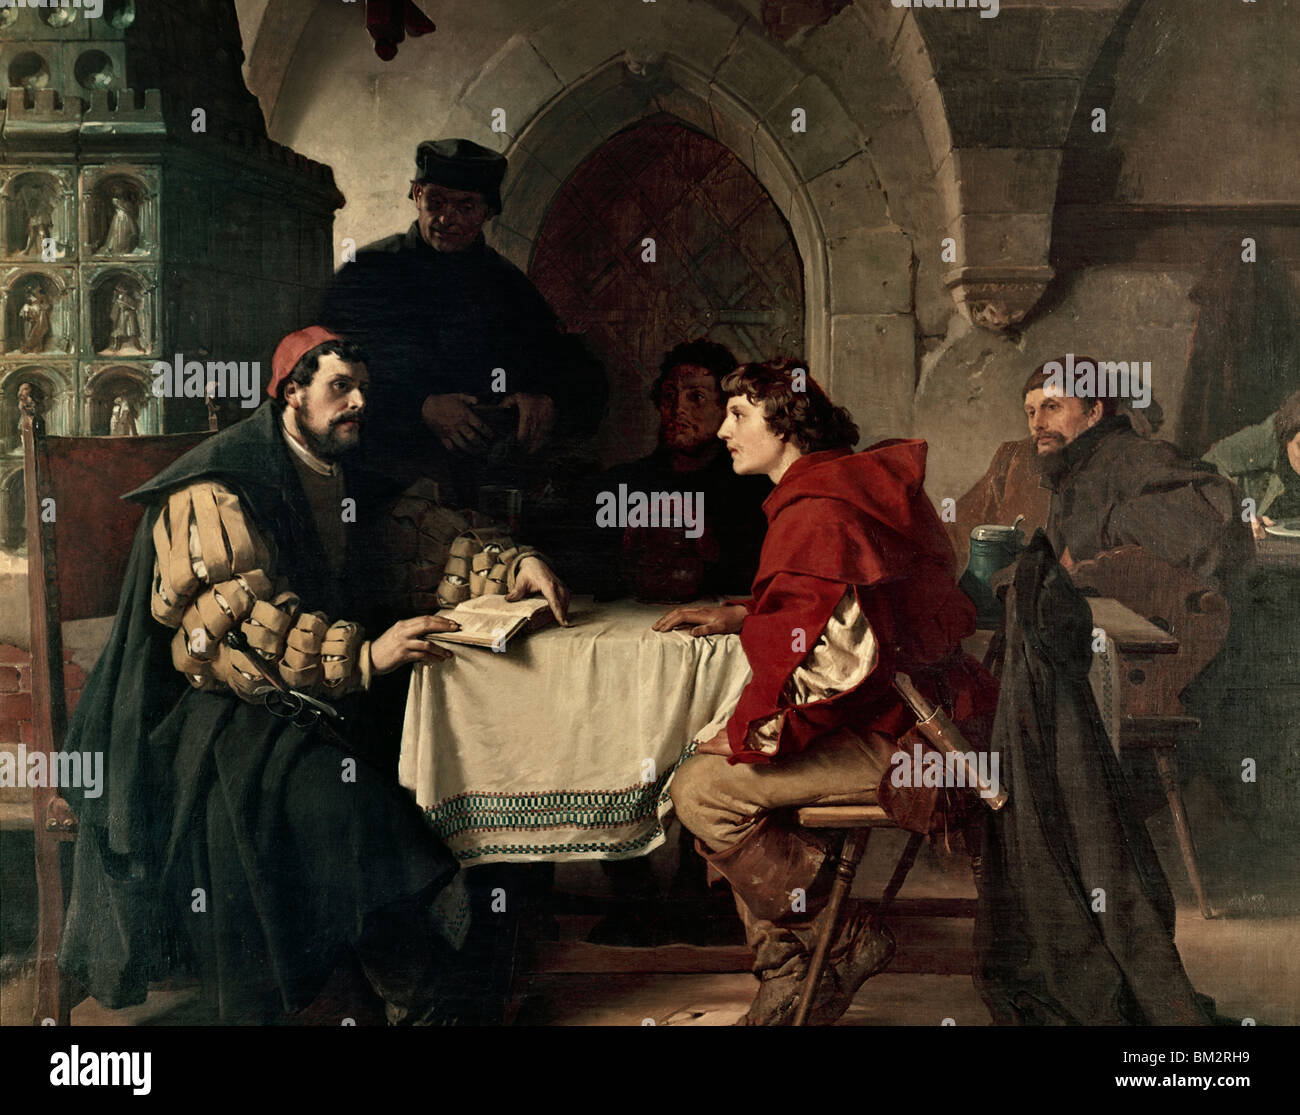 Luther as Junker Jorg in the Jena Inn with Students by Freidrich Paul Thumann, (1834-1903) - Stock Image